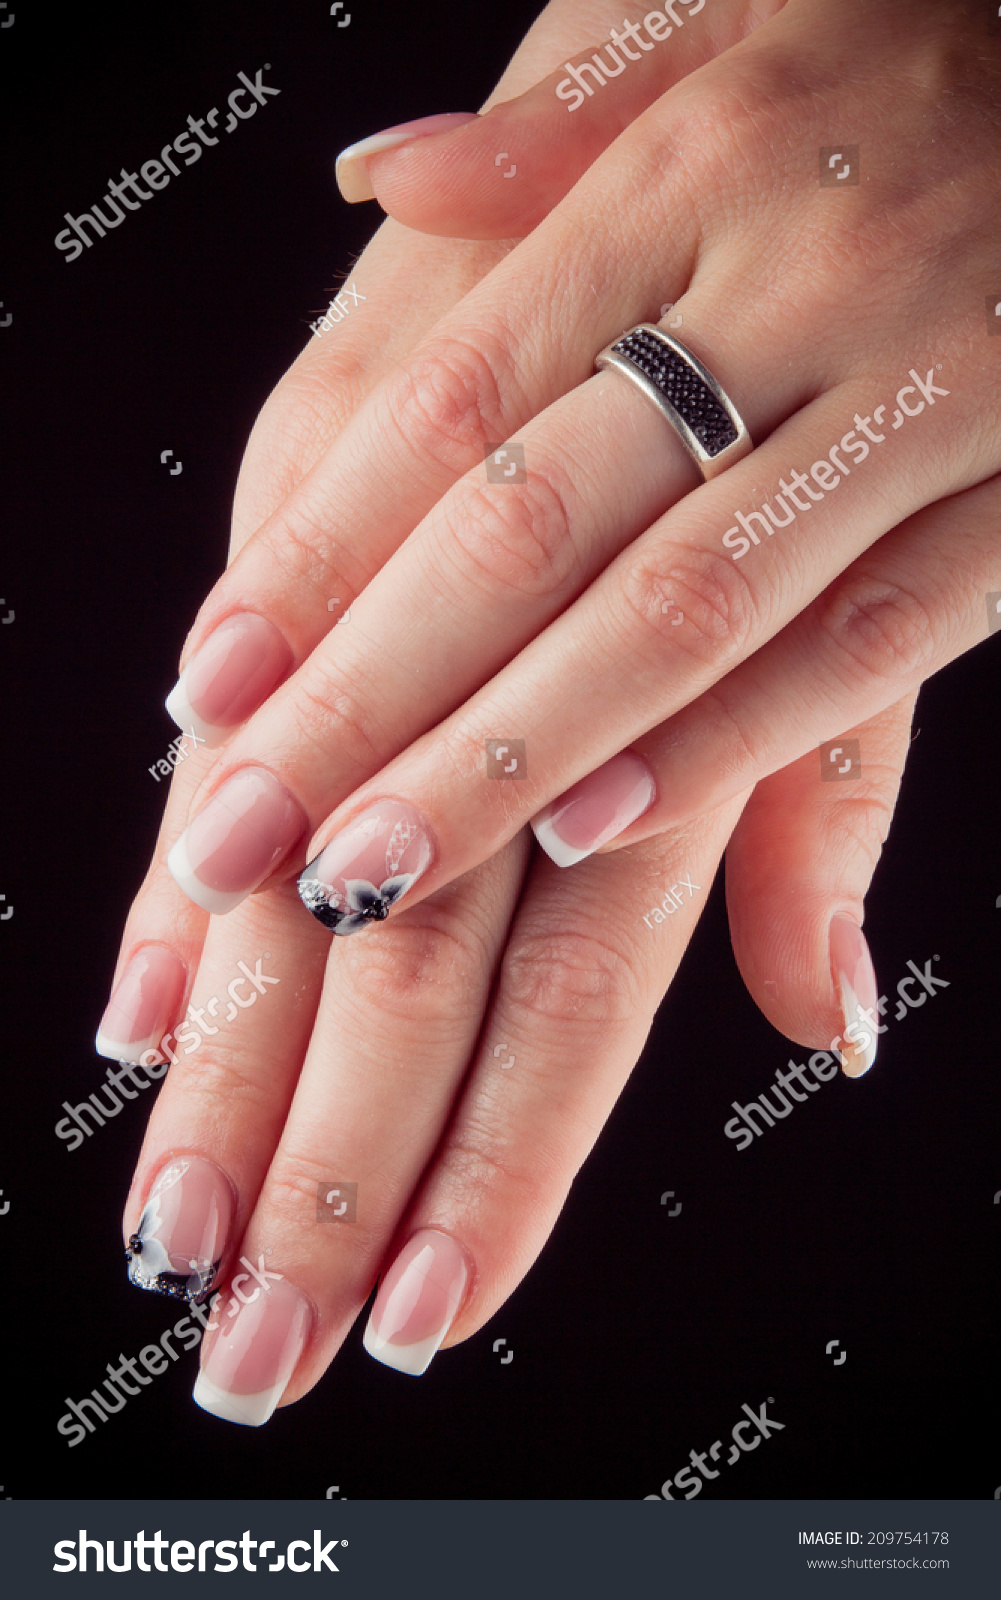 painted nails with flowers and hands isolated on black background ...